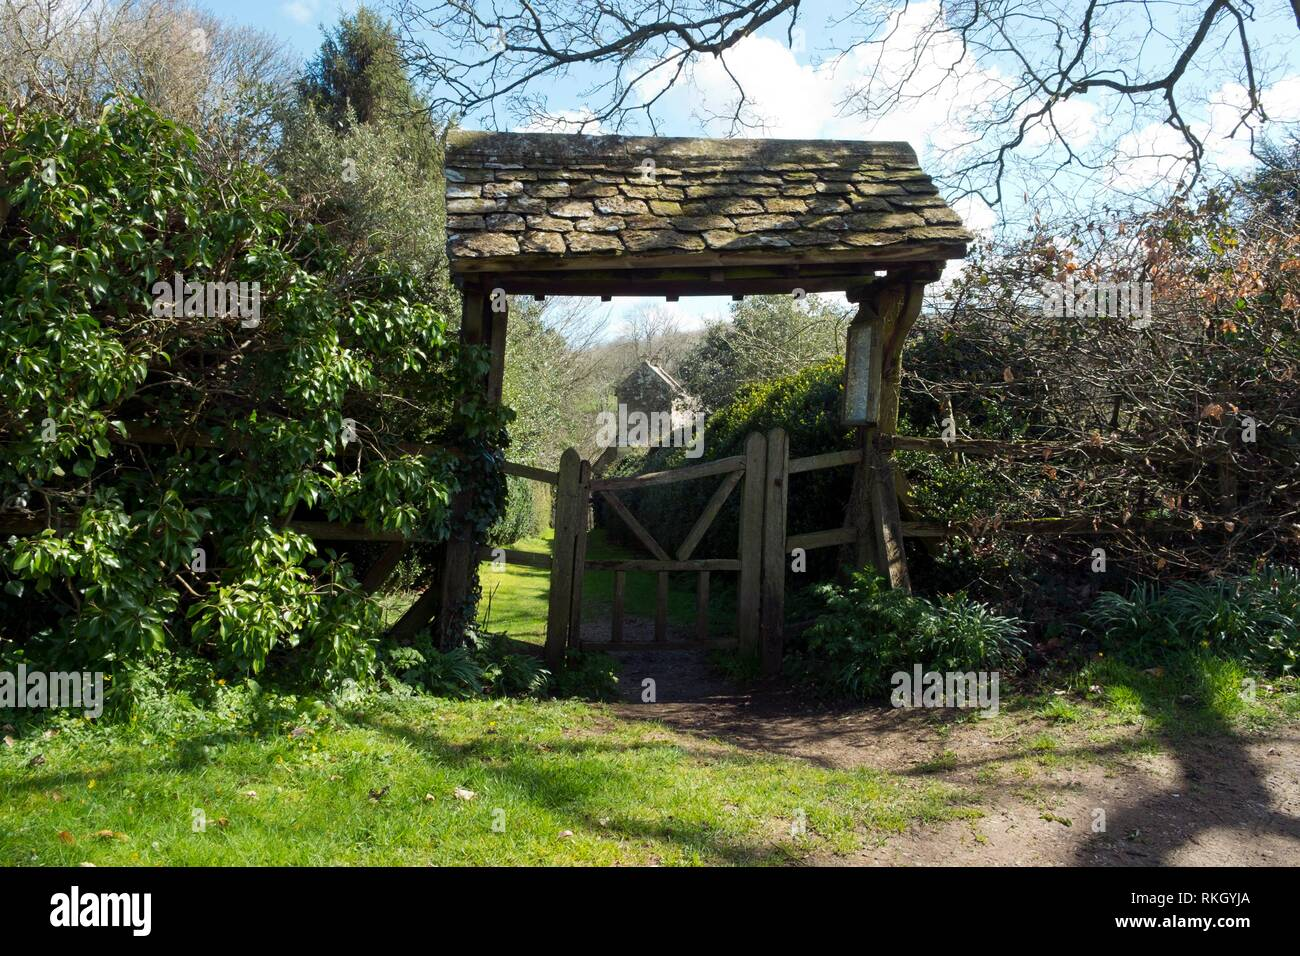 Spring sunshine on the picturesque lychgate to the tiny old Saxon church at Duntisbourne Rouse in the Cotswolds, Gloucestershire, UK. - Stock Image